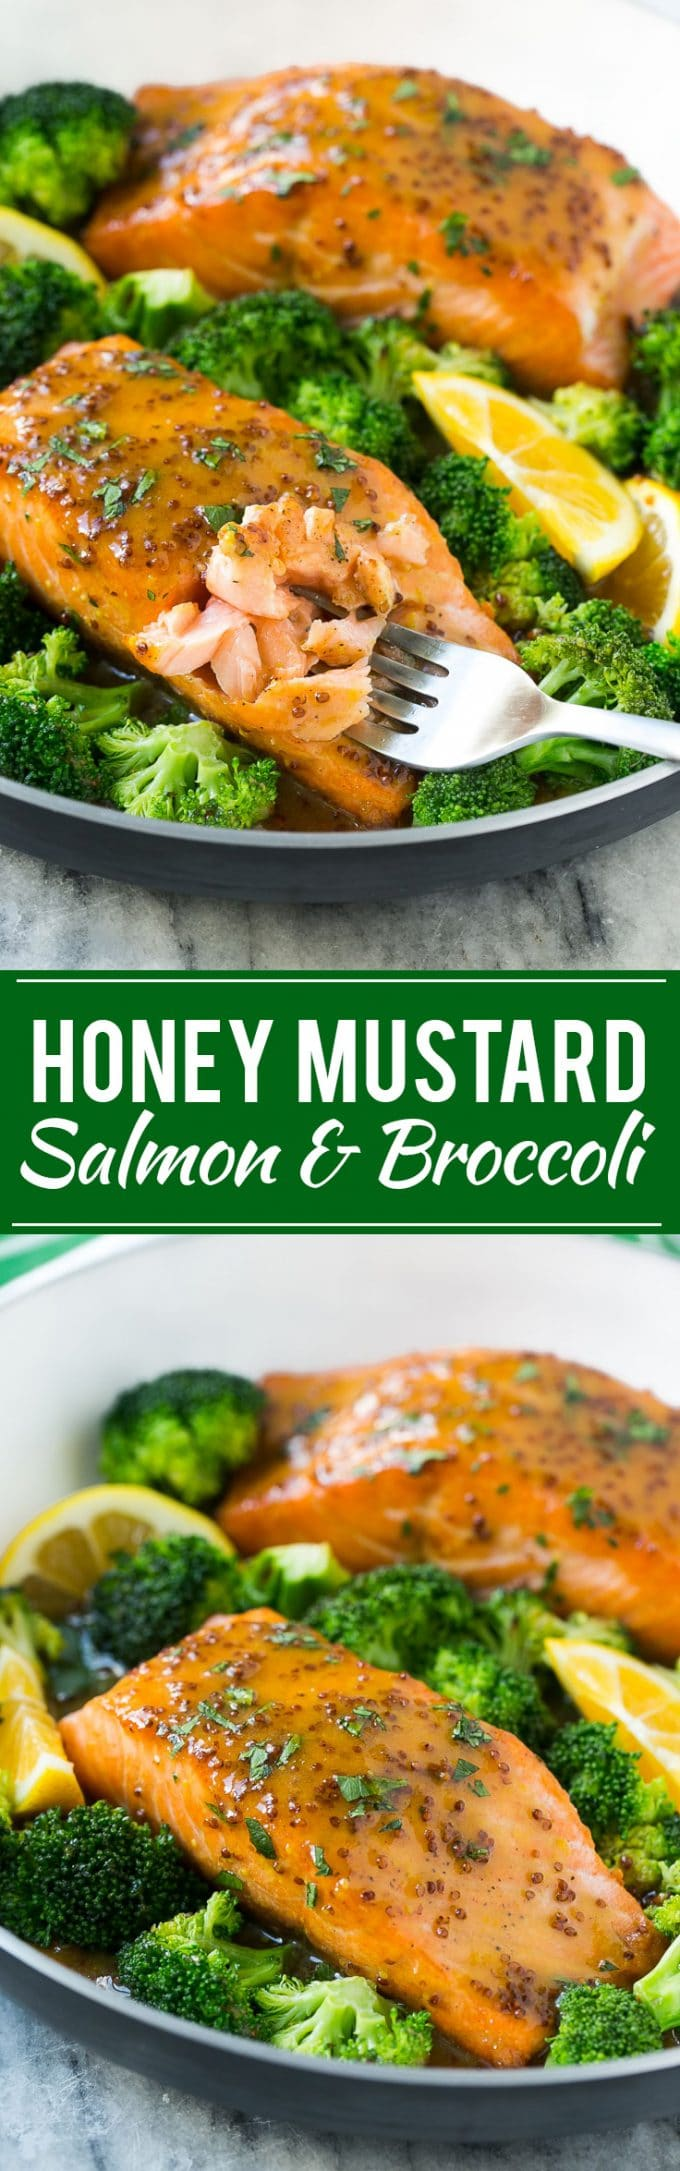 Honey Mustard Salmon Recipe | Salmon and Broccoli | Seared Salmon | One Pot Meal #onepotmeal #salmon #broccoli #dinner #dinneratthezoo